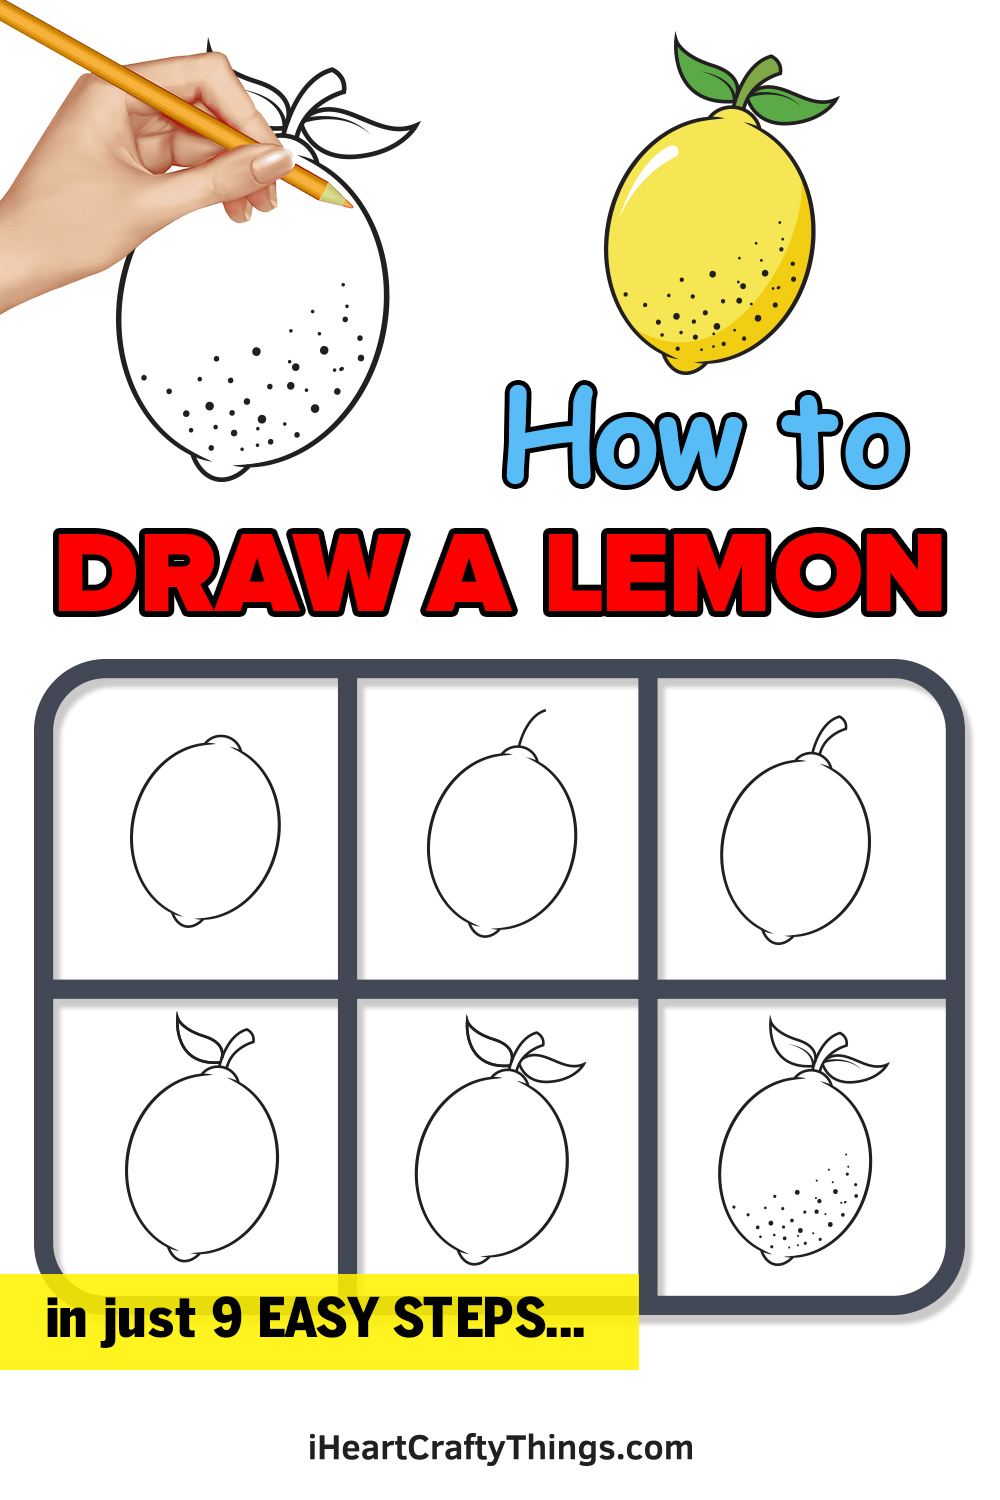 how to draw a lemon in 9 easy steps